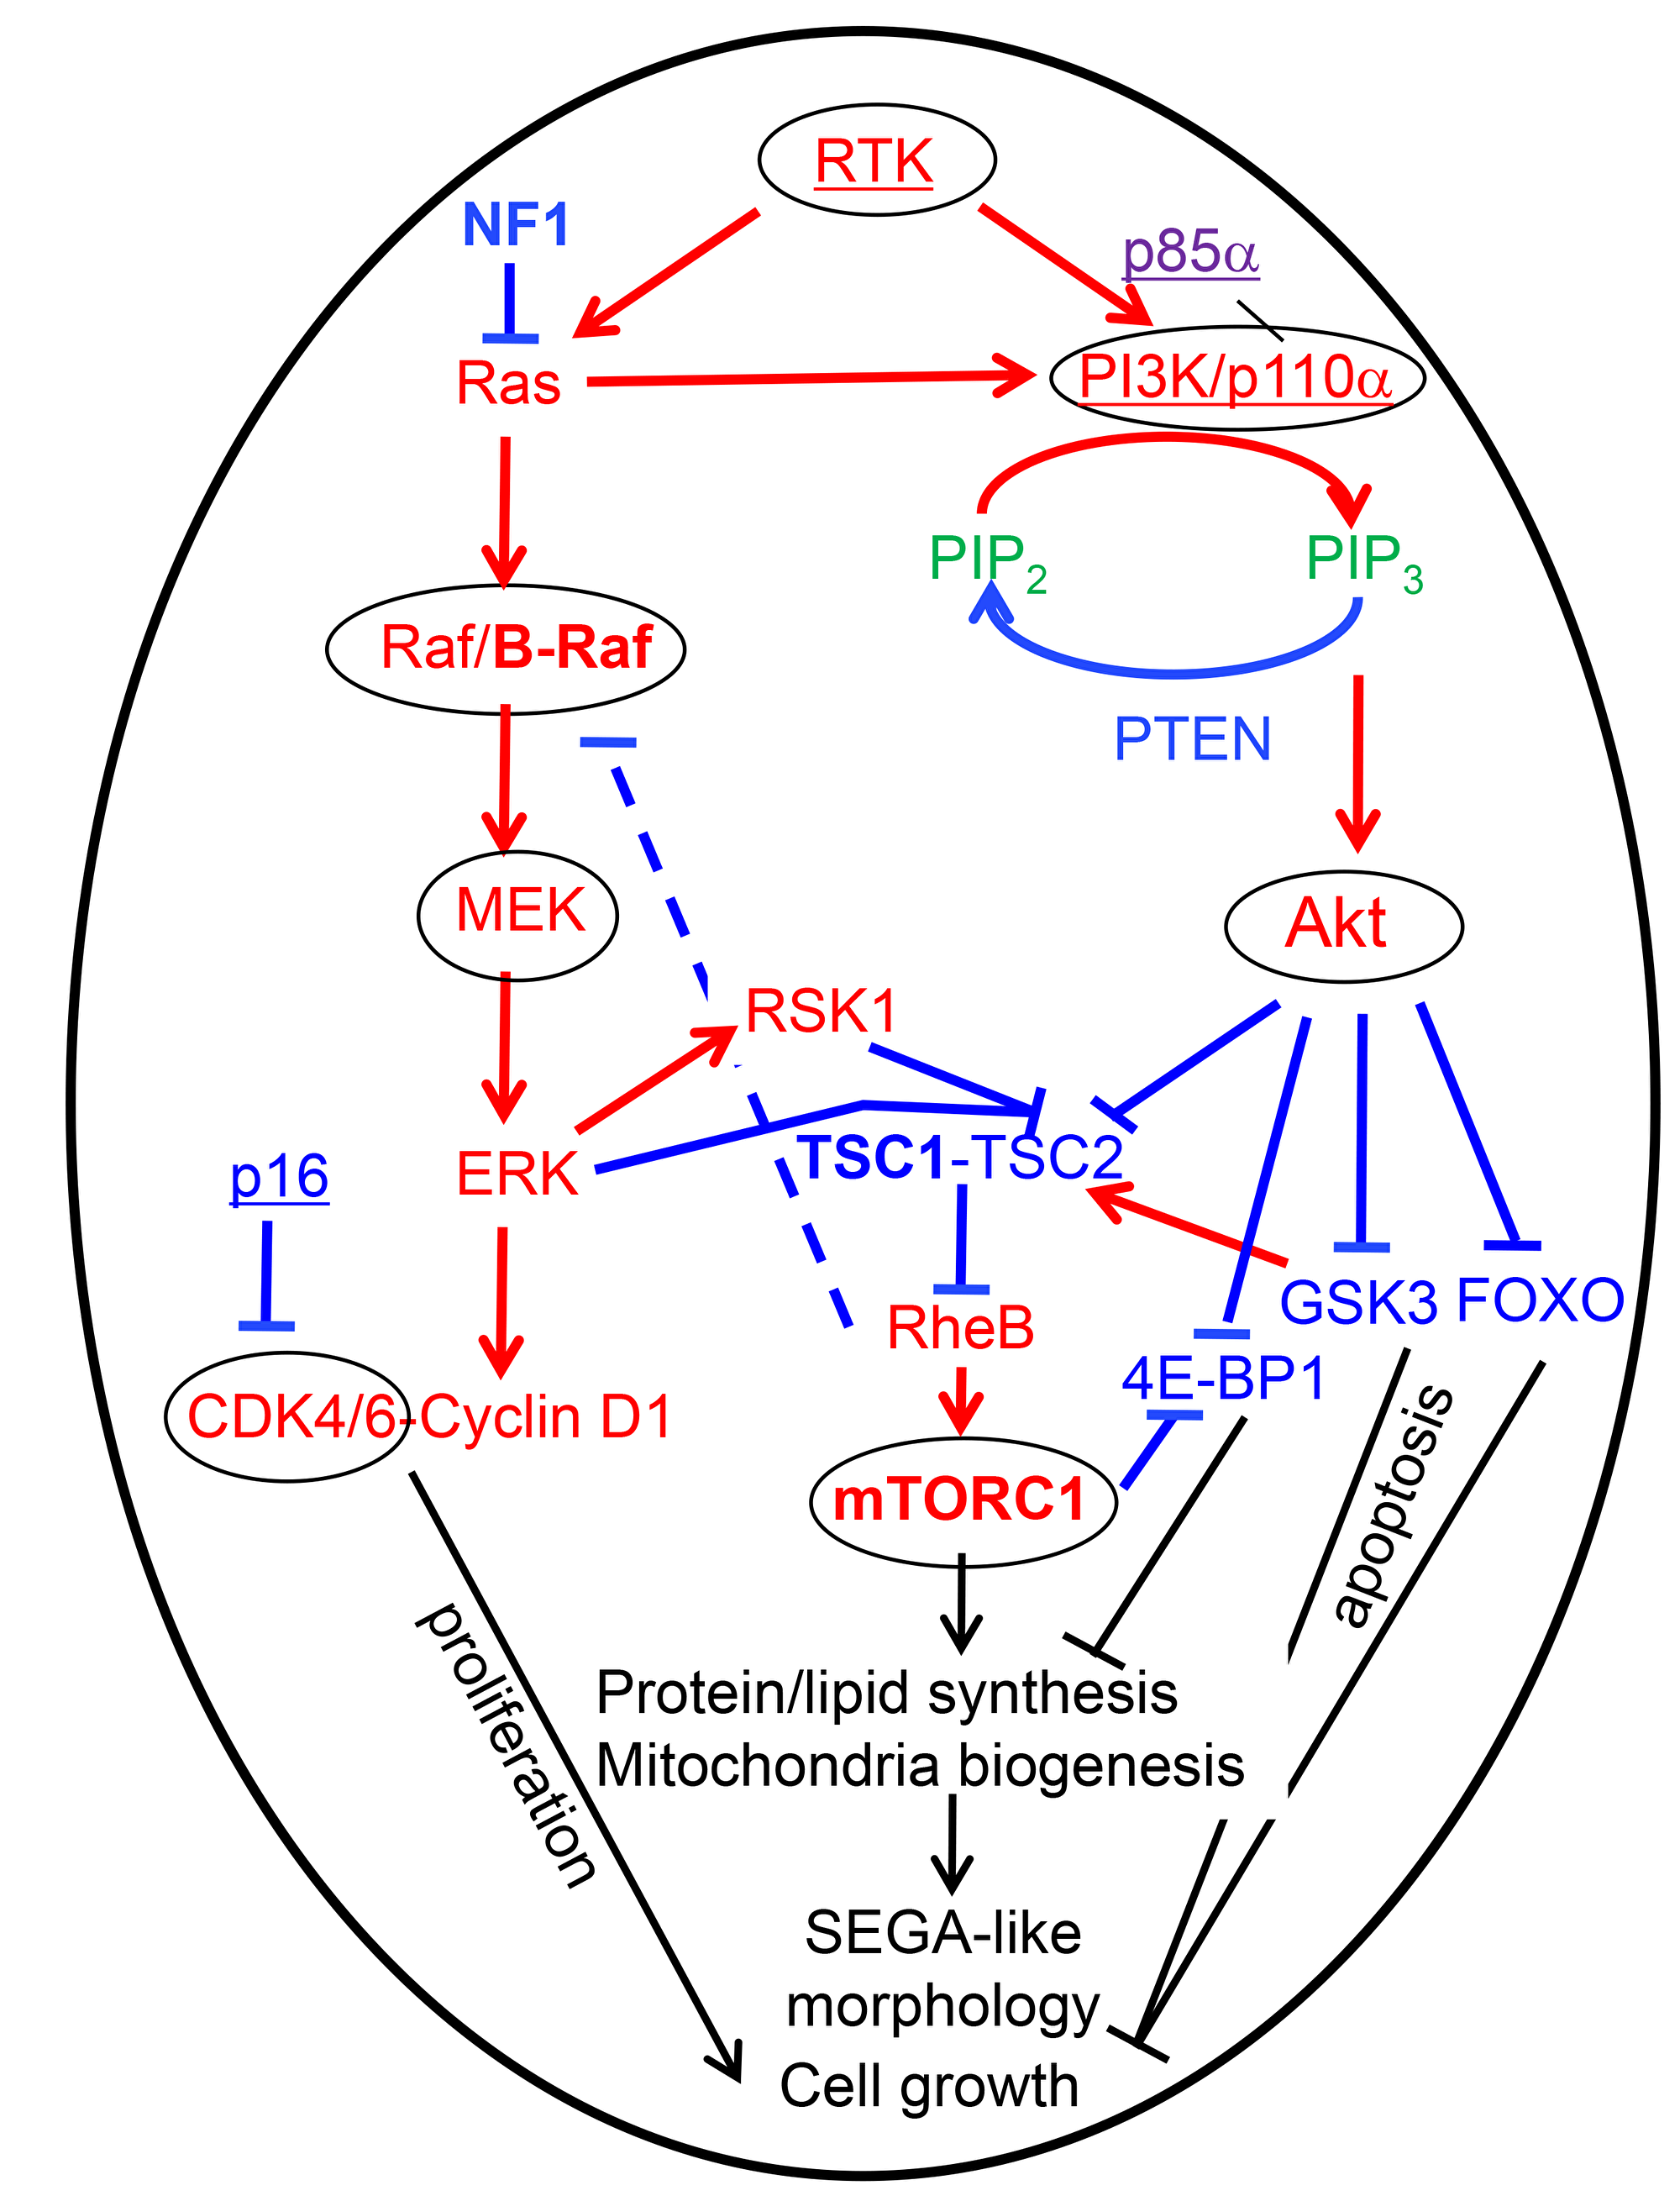 Therapy-oriented mTORC1 signaling model in epithelioid/SEGA-like glioblastoma has been compiled from various sources [3, 9, 25, 46].